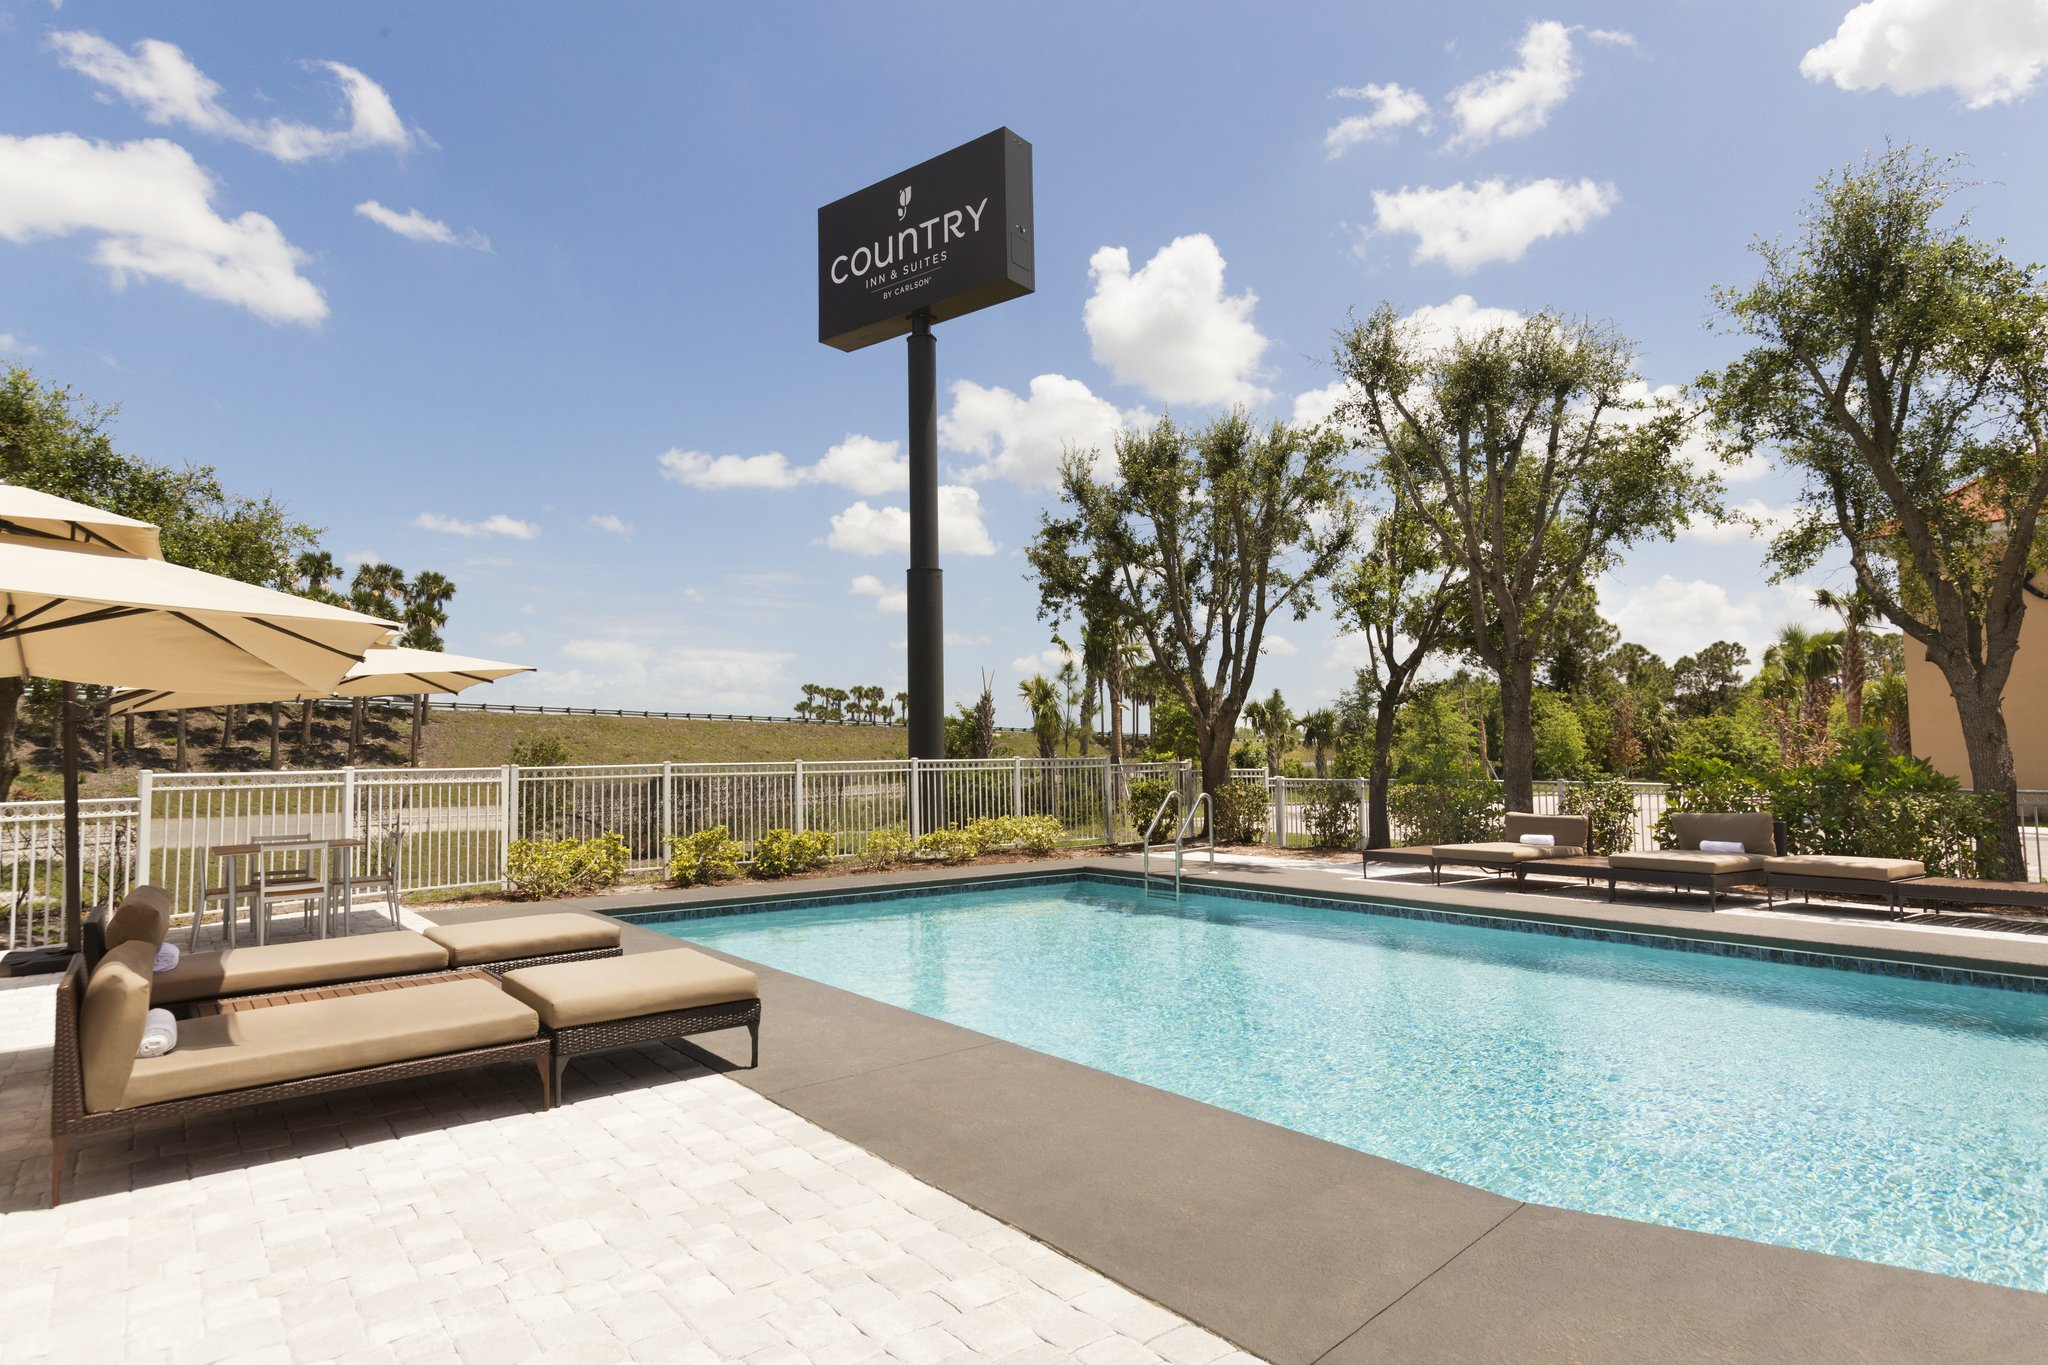 Country Inn & Suites Vero Beach-I-95